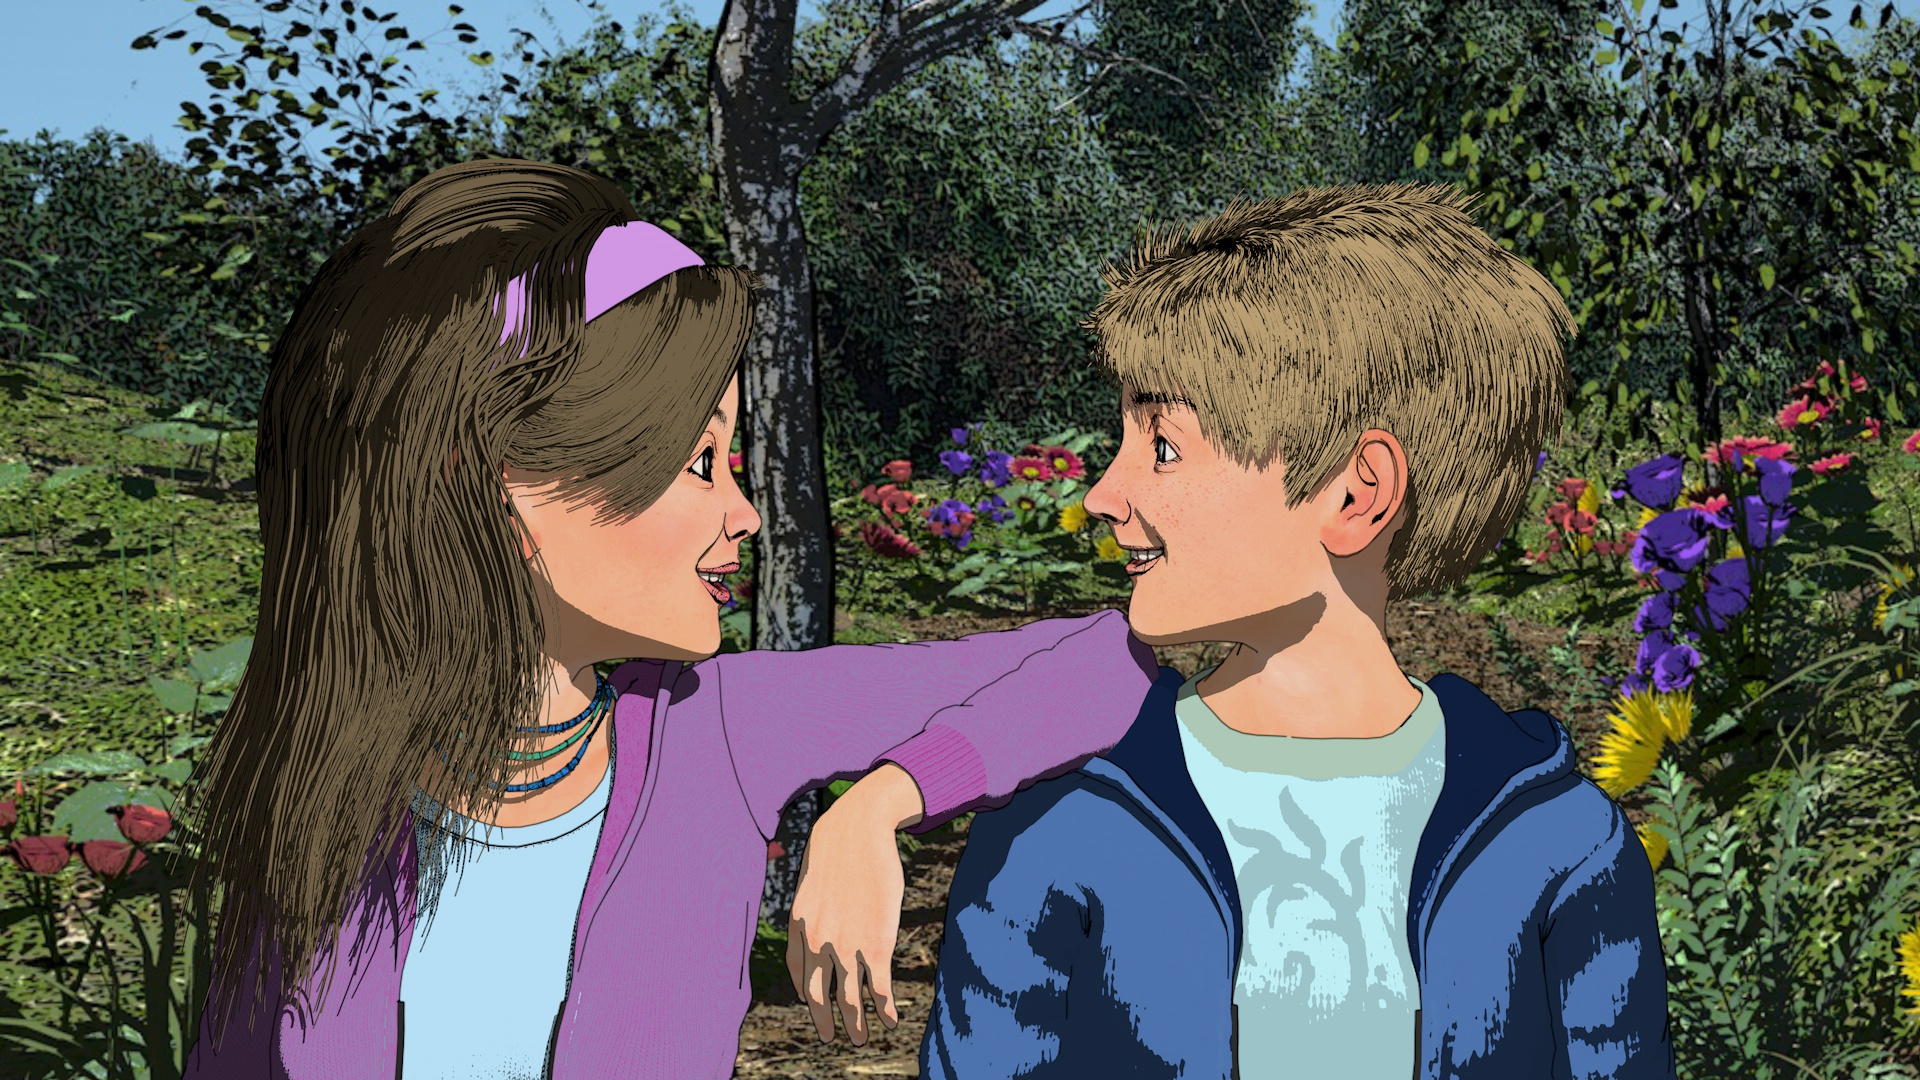 Outdoor scenes, which brighten when the boys are taught that girls and women are friends, mothers and sisters, were modeled from scratch in Cinema 4D Interior scenes were a mix of custom work and models purchased online.